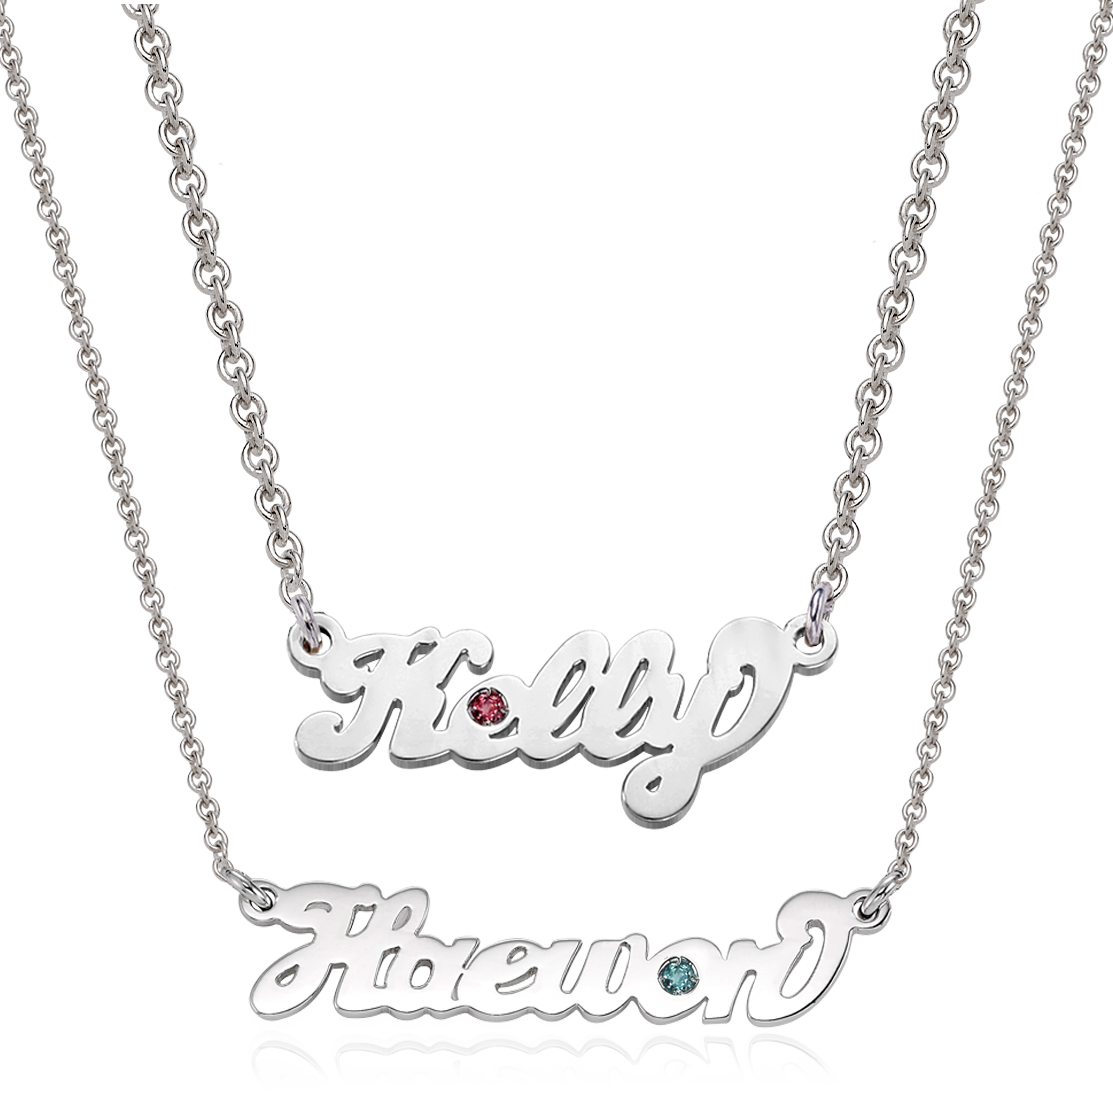 [With My Child] Silver Grace Birthstone Name Necklace